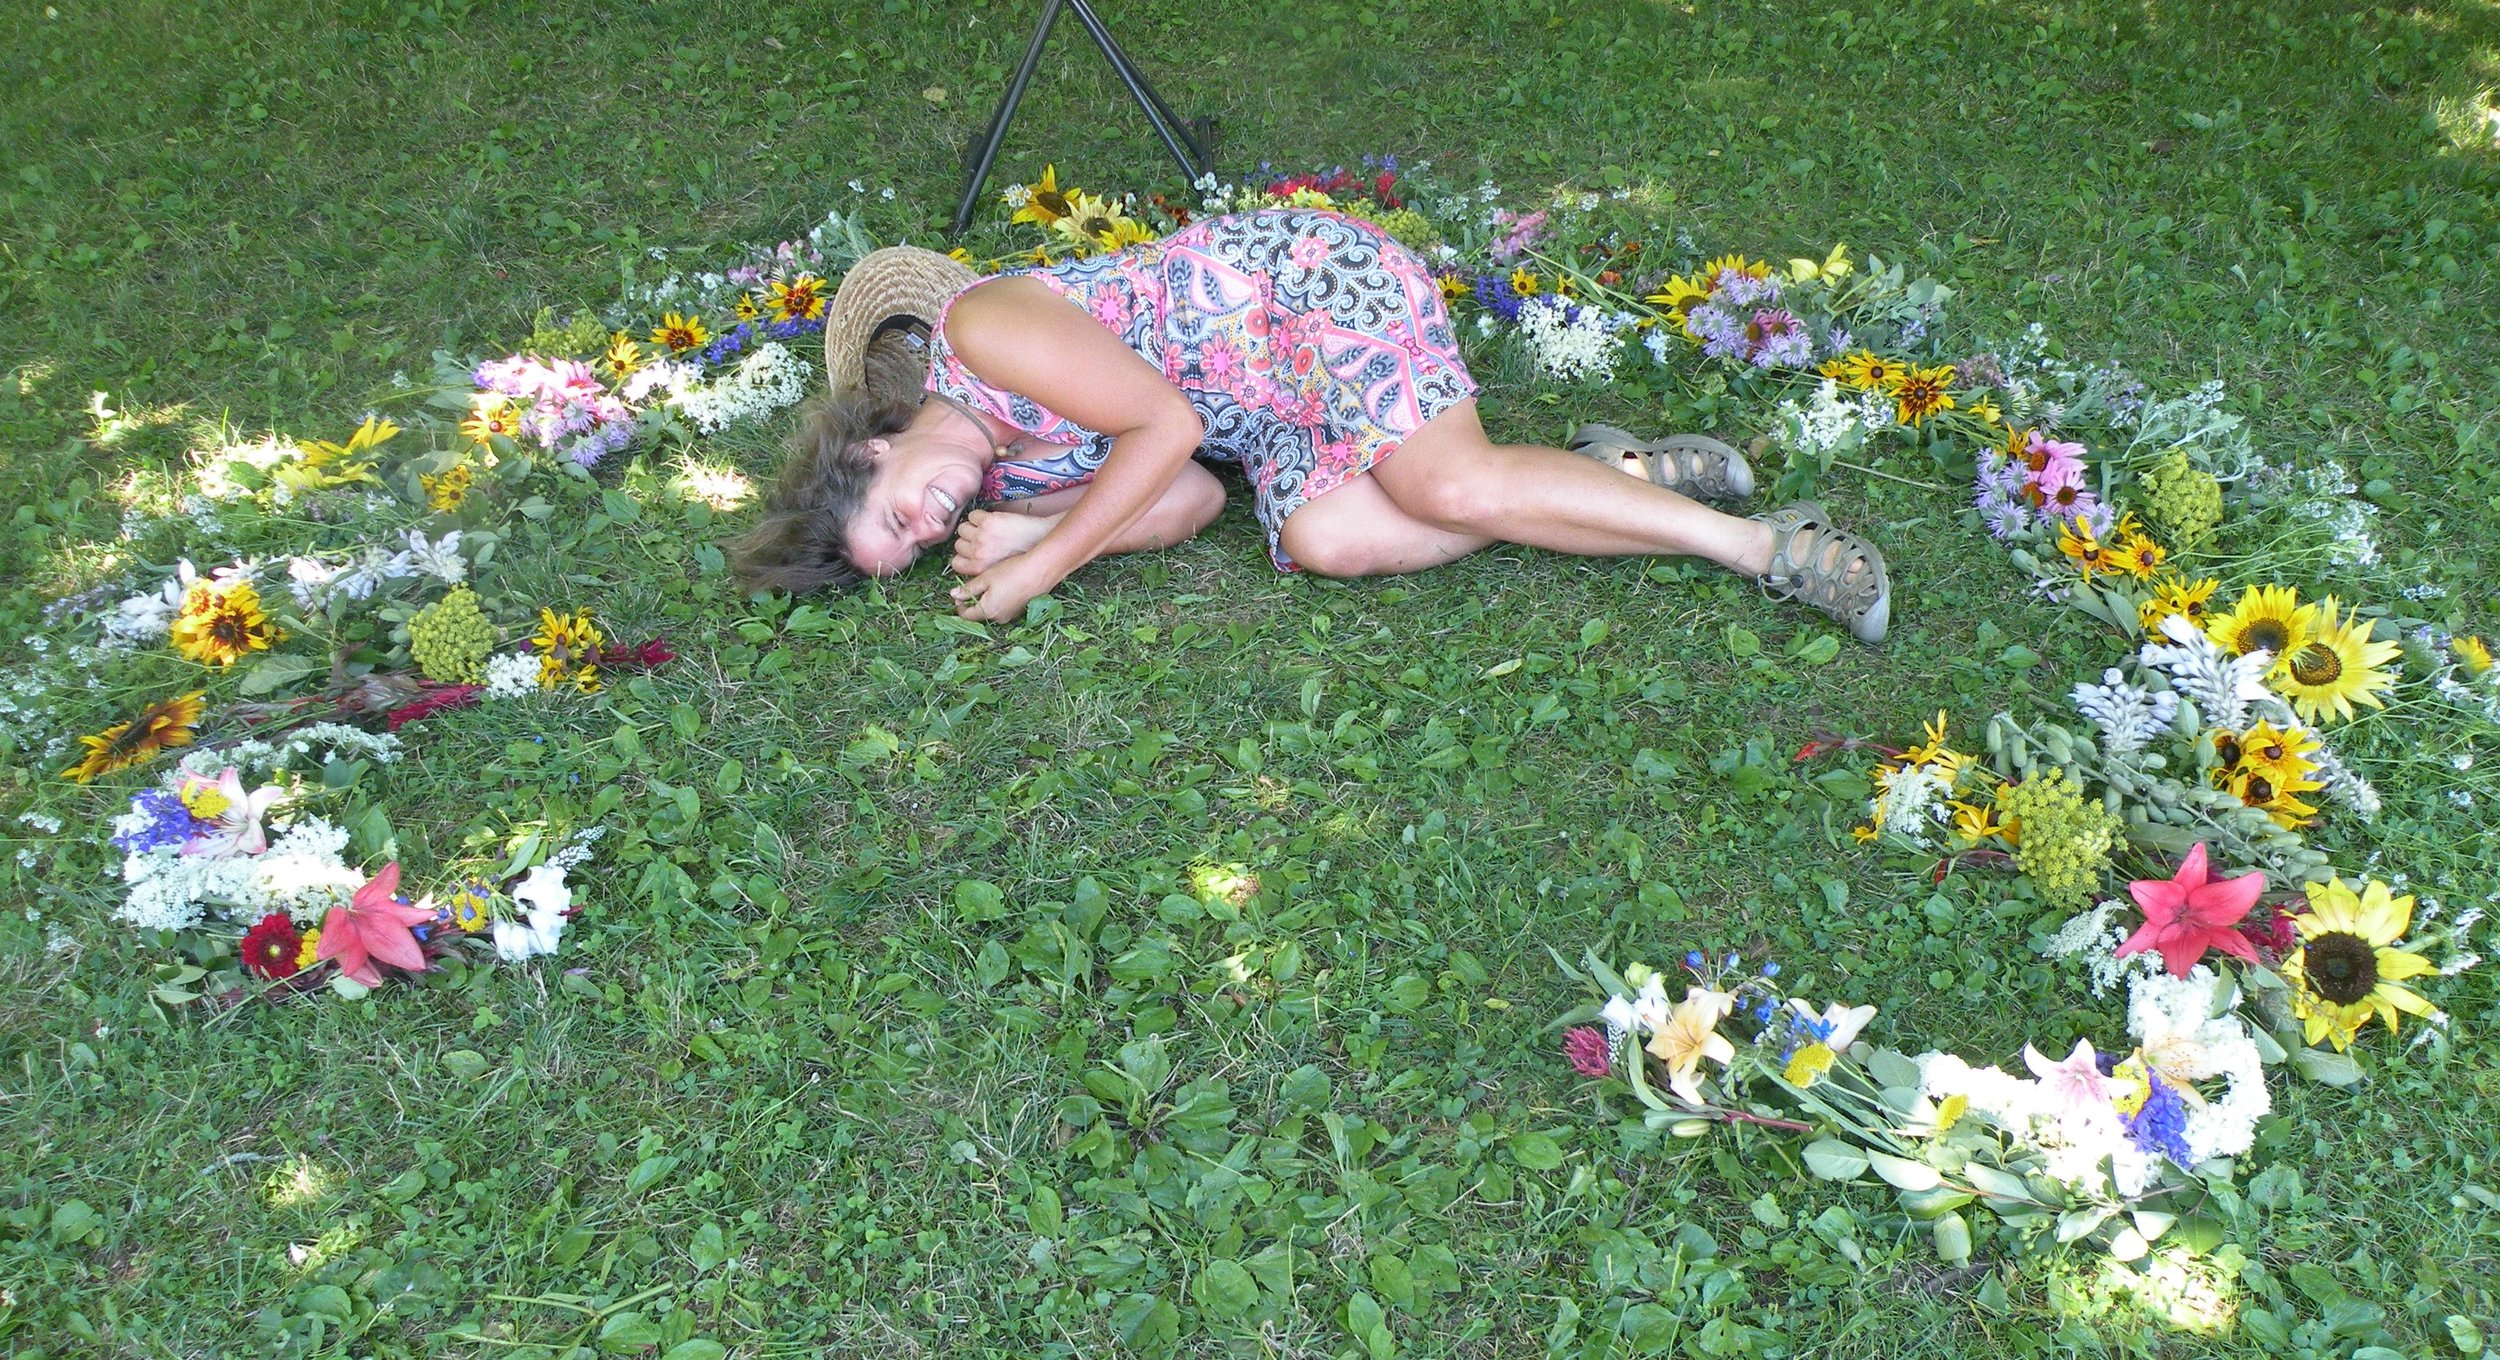 Laying down in a flower mandala at the end of a long design day. Photo by Rob McClure